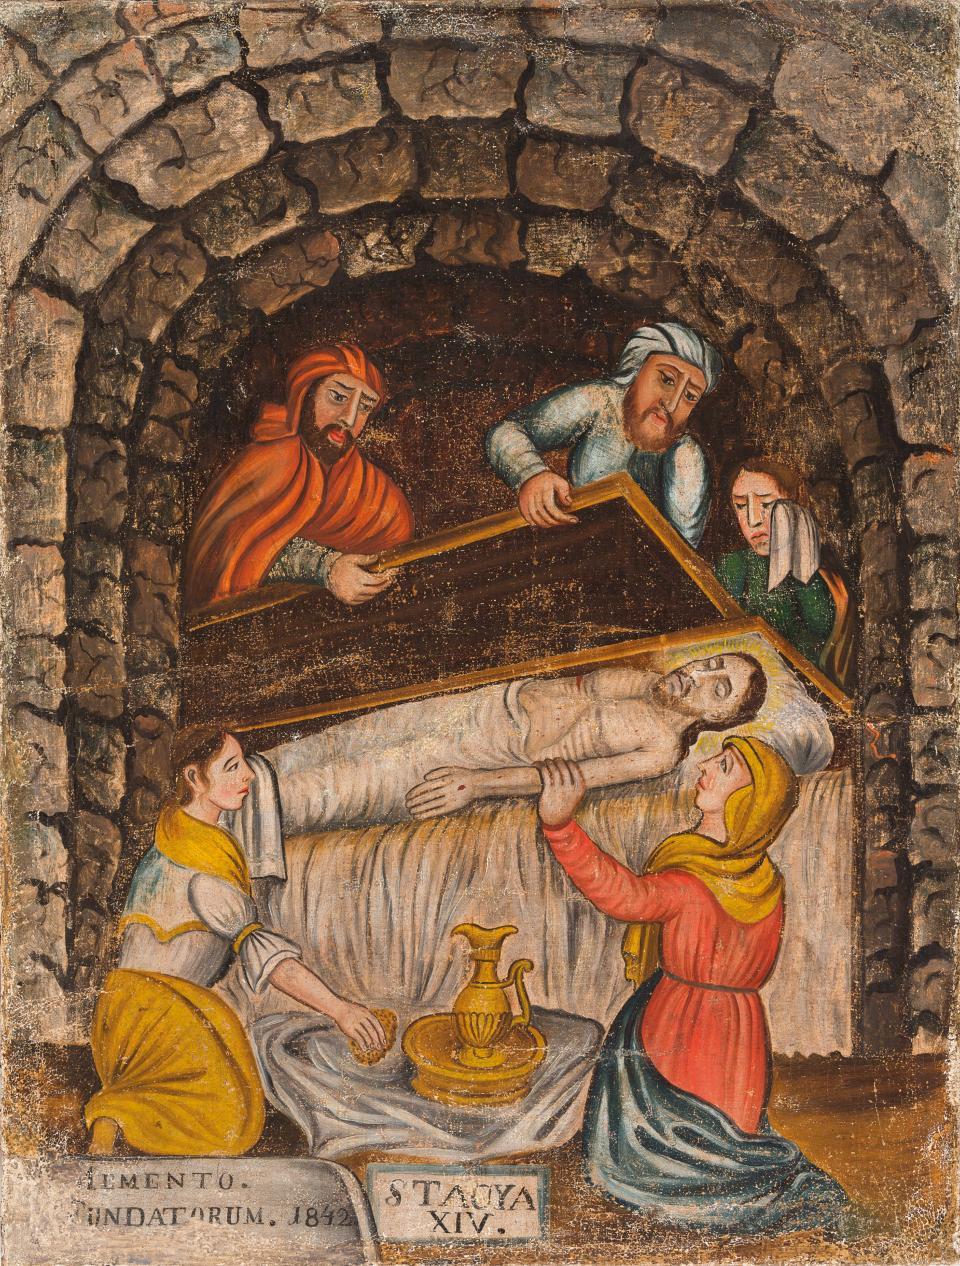 Fourteenth Station. Jesus is Laid in the Tomb